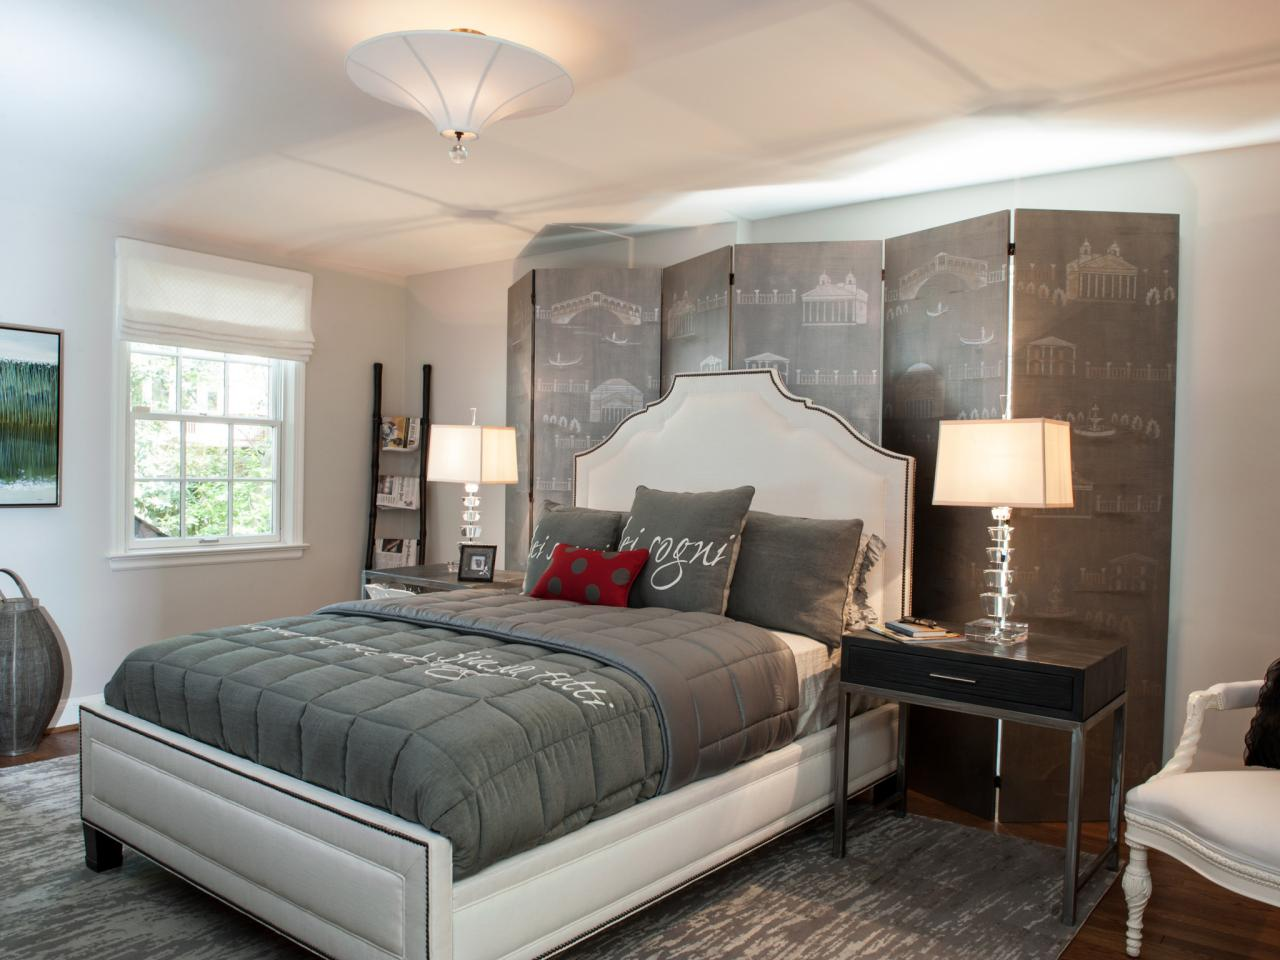 The Bedroom color ideas is not just an idea, it's a way of creating a new world of your own.